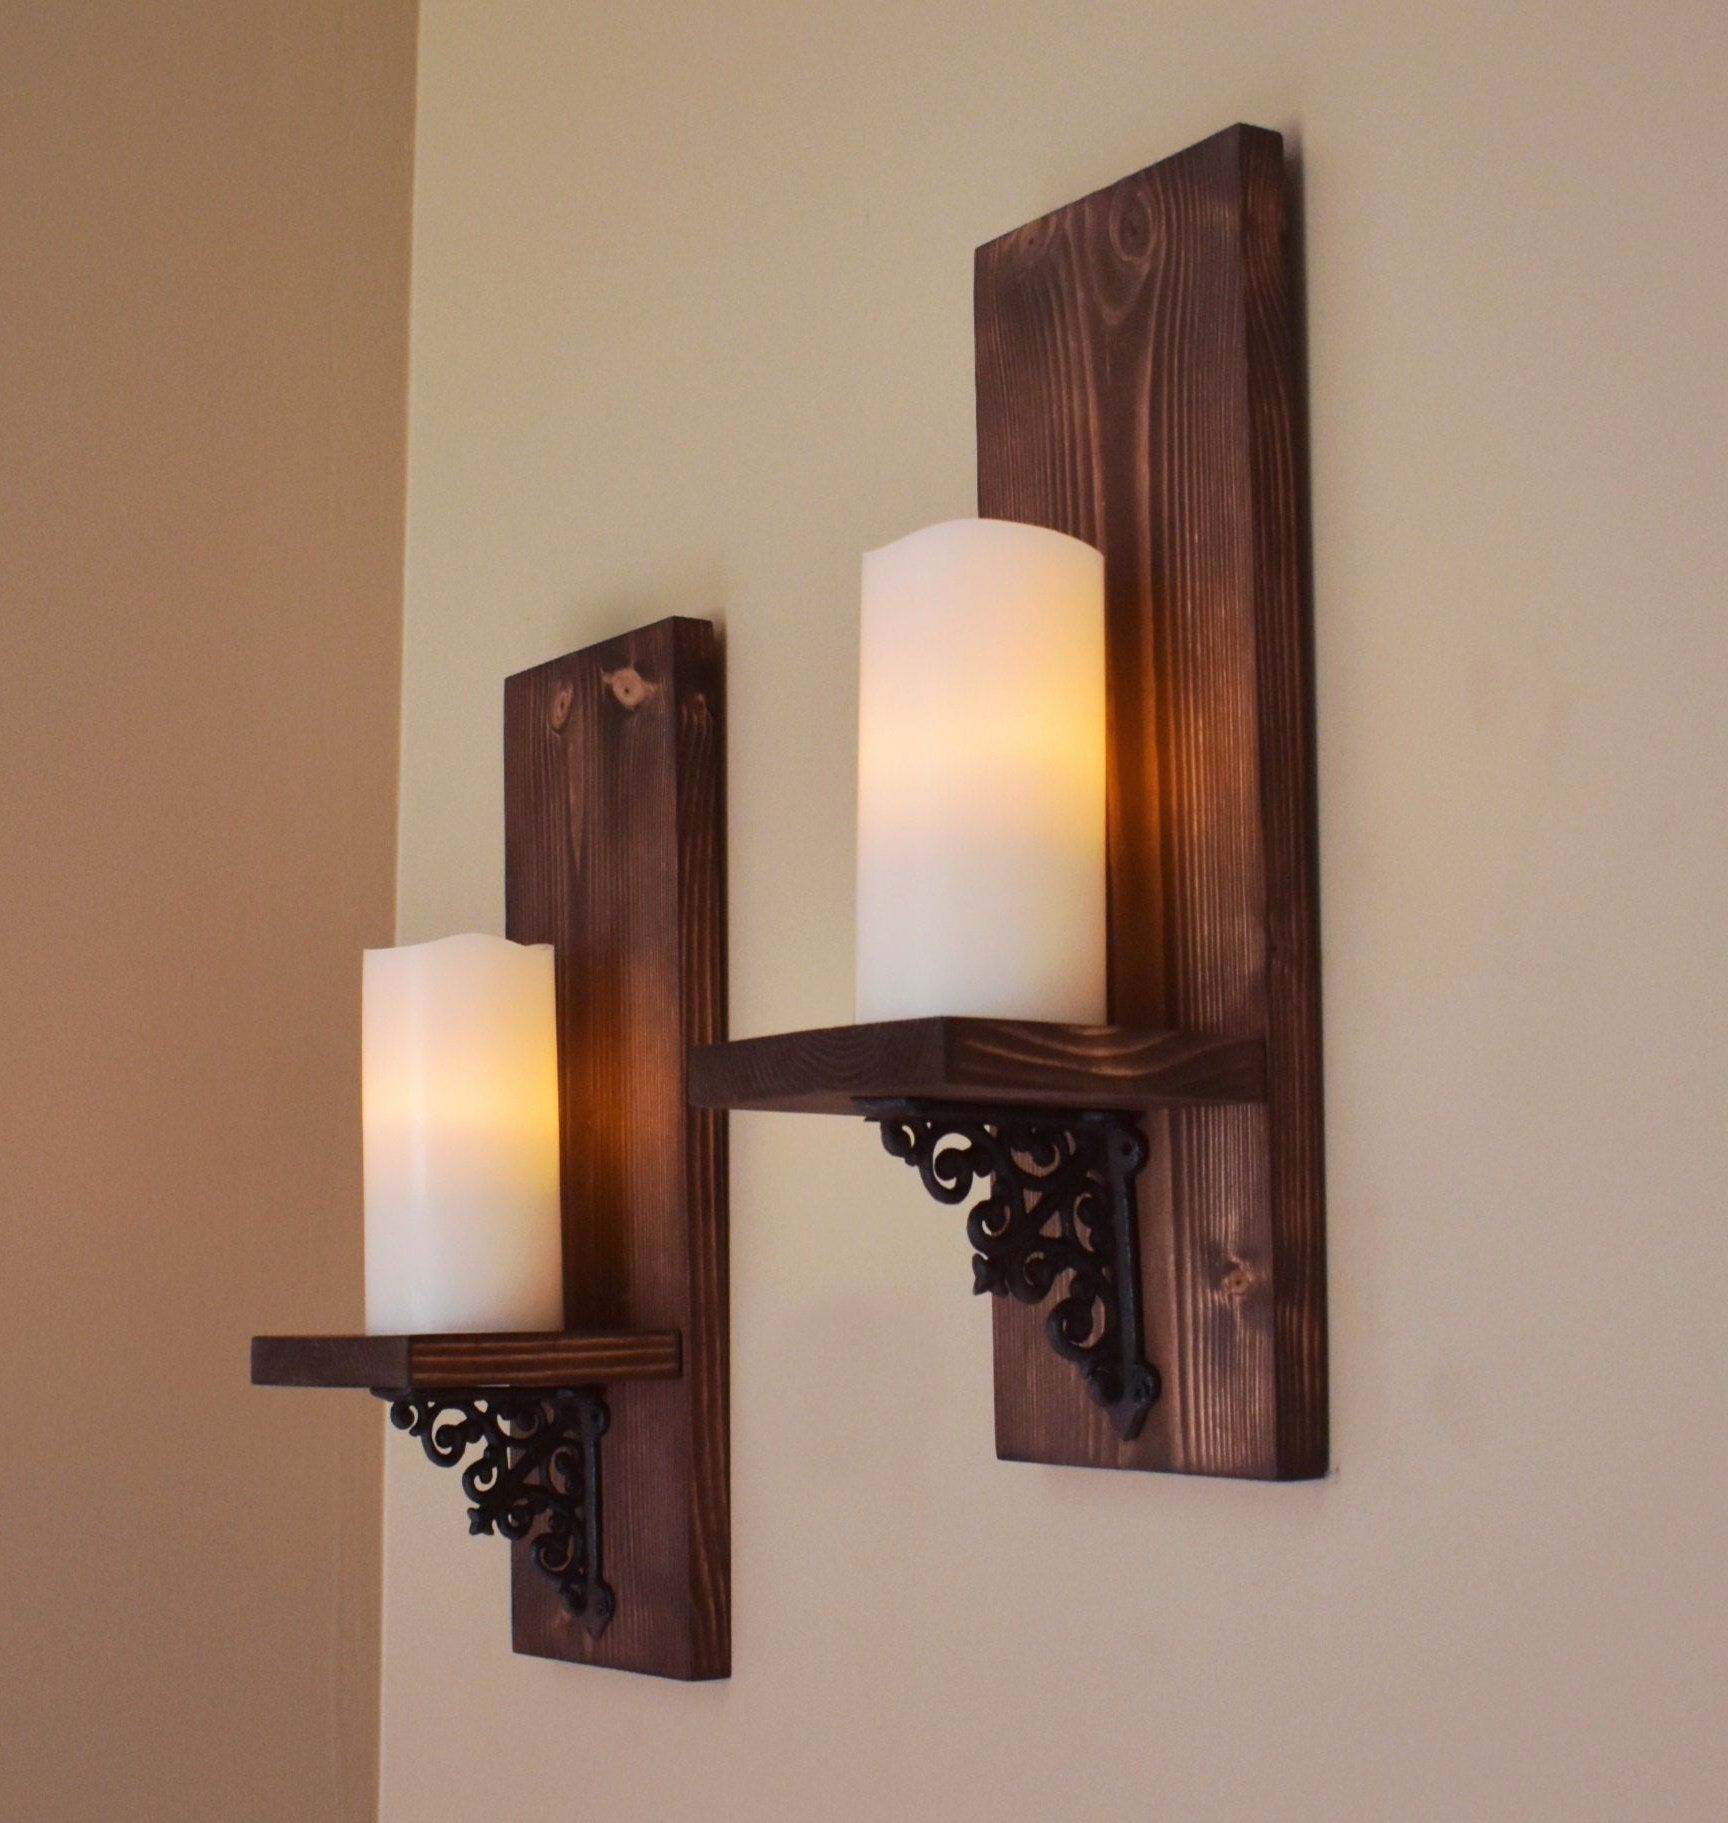 Rustic Wall Decor Wall Sconce Set Of 2 Modern Rustic Wood Etsy Rustic Candle Sconce Wooden Candle Sconces Wall Candle Holders